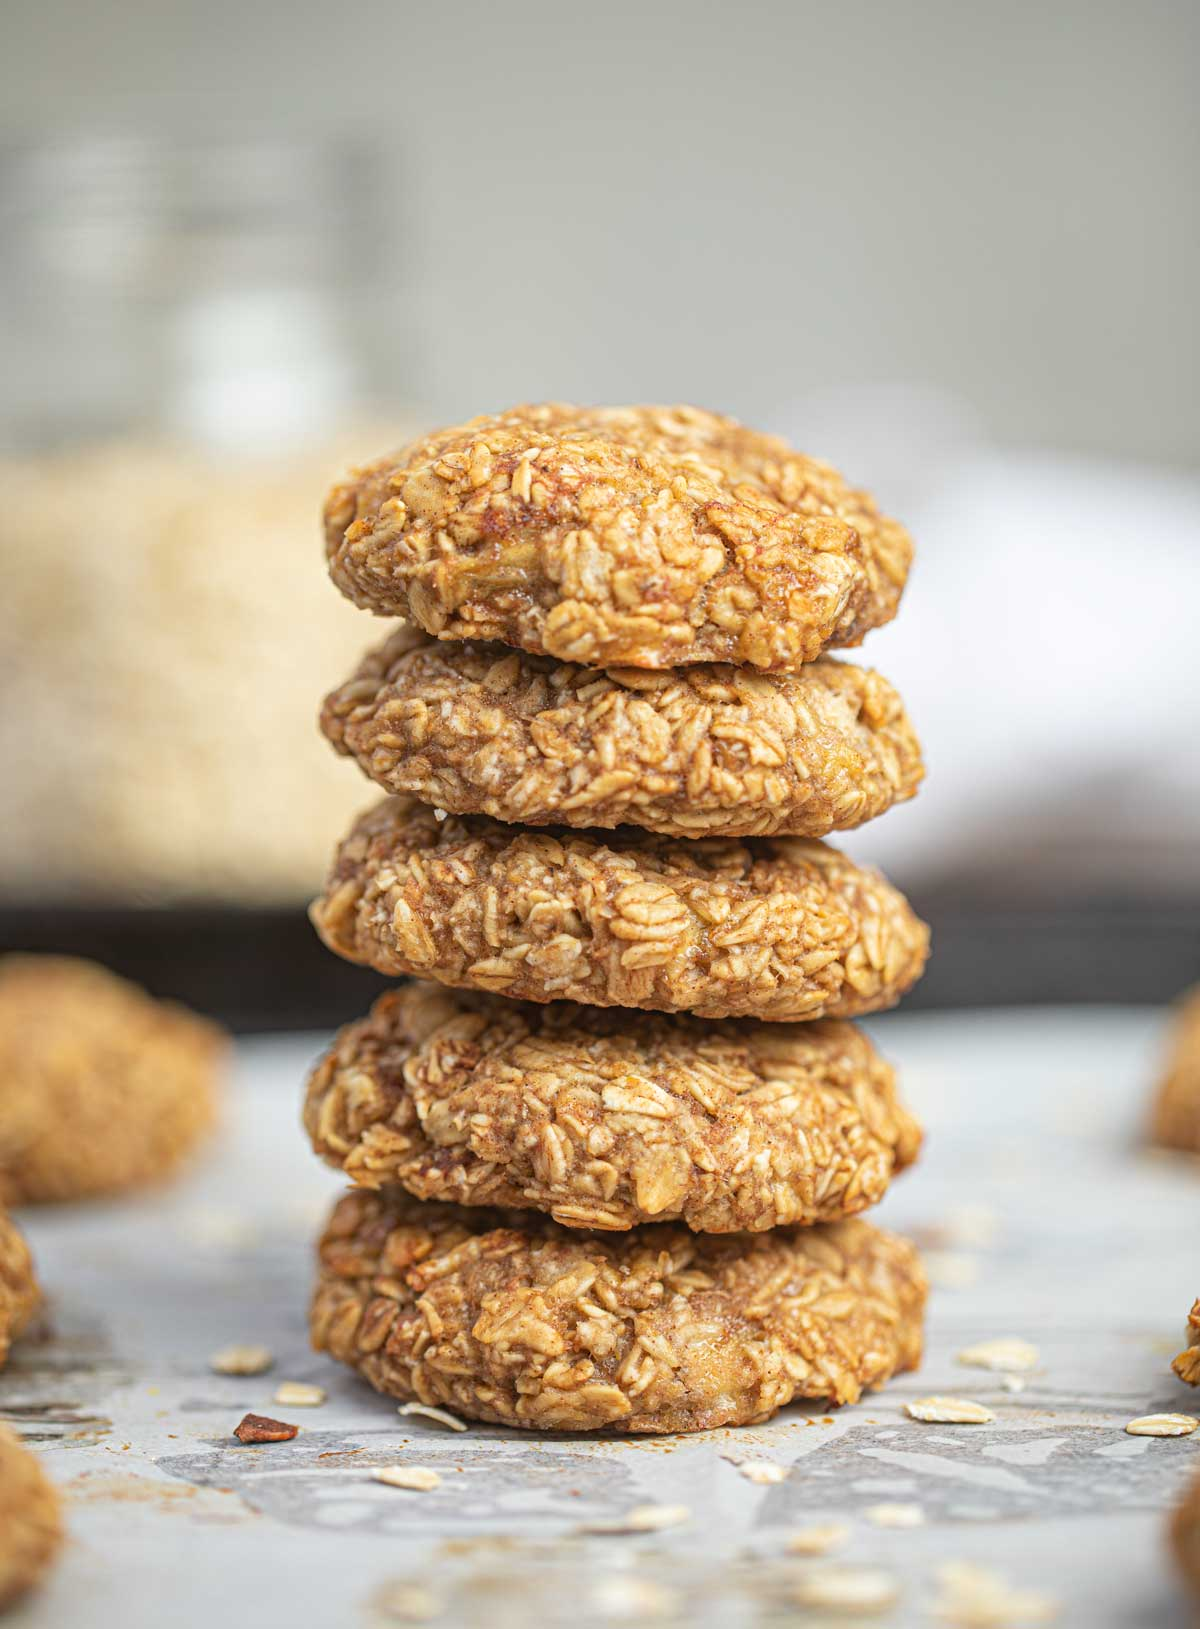 Oatmeal Banana Cookies (3 Ingredients!)